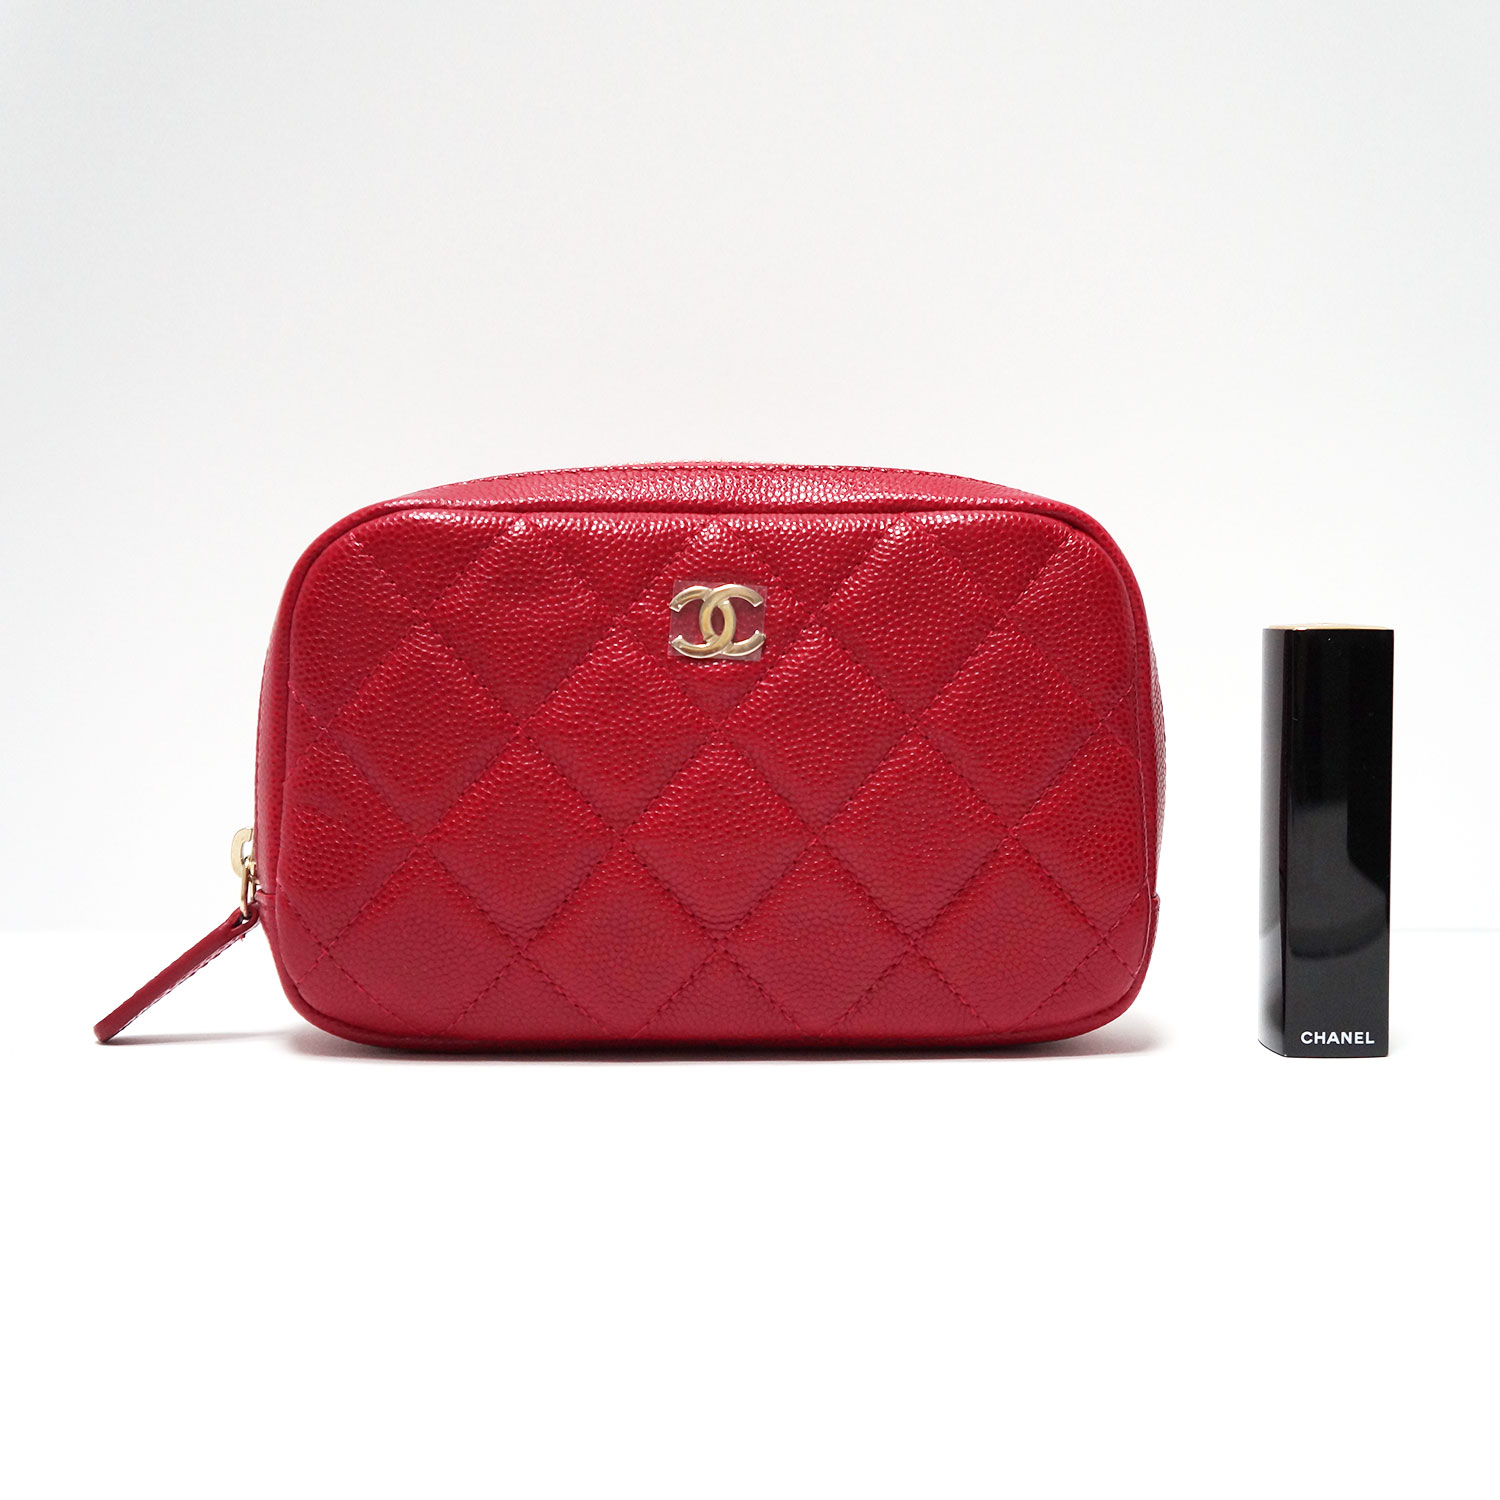 9d89c38974ecca Chanel Red Caviar Leather Quilted Makeup Case Clutch Bag My